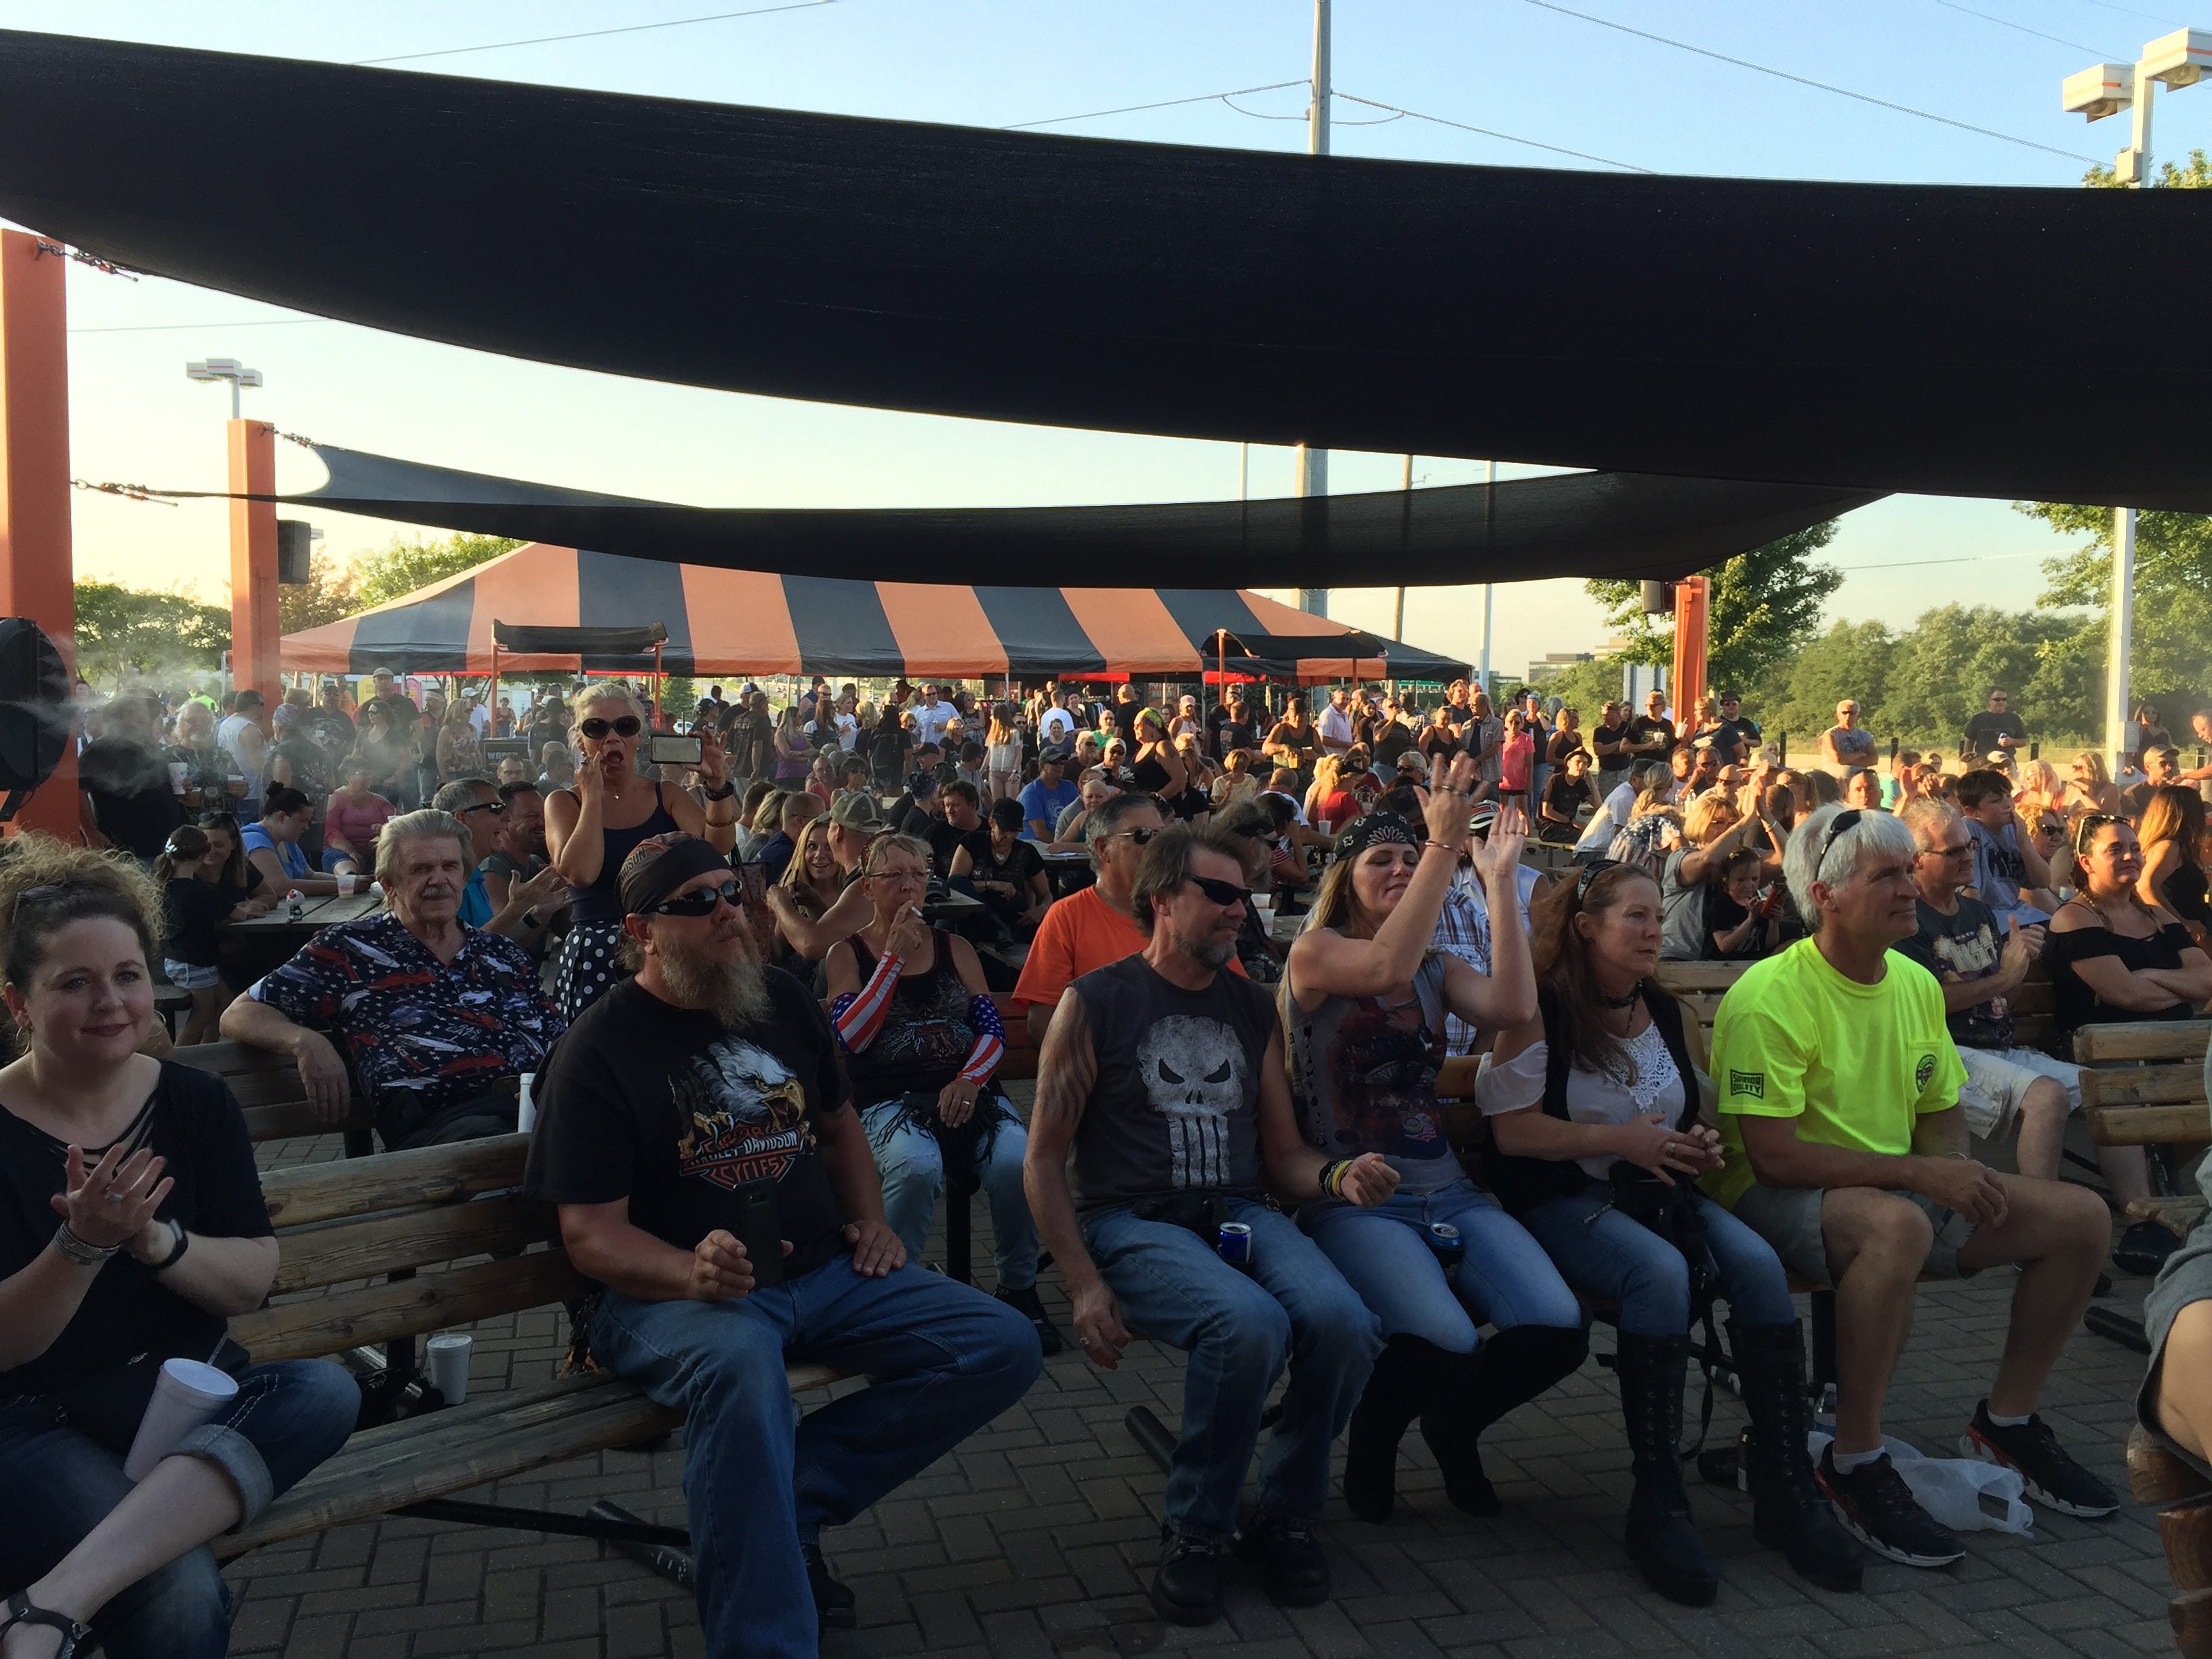 About 400 people turned out for live music and beer, to check out new bike models and to meet Harley-Davidson executives such as Karen Davidson and Bill Davidson.